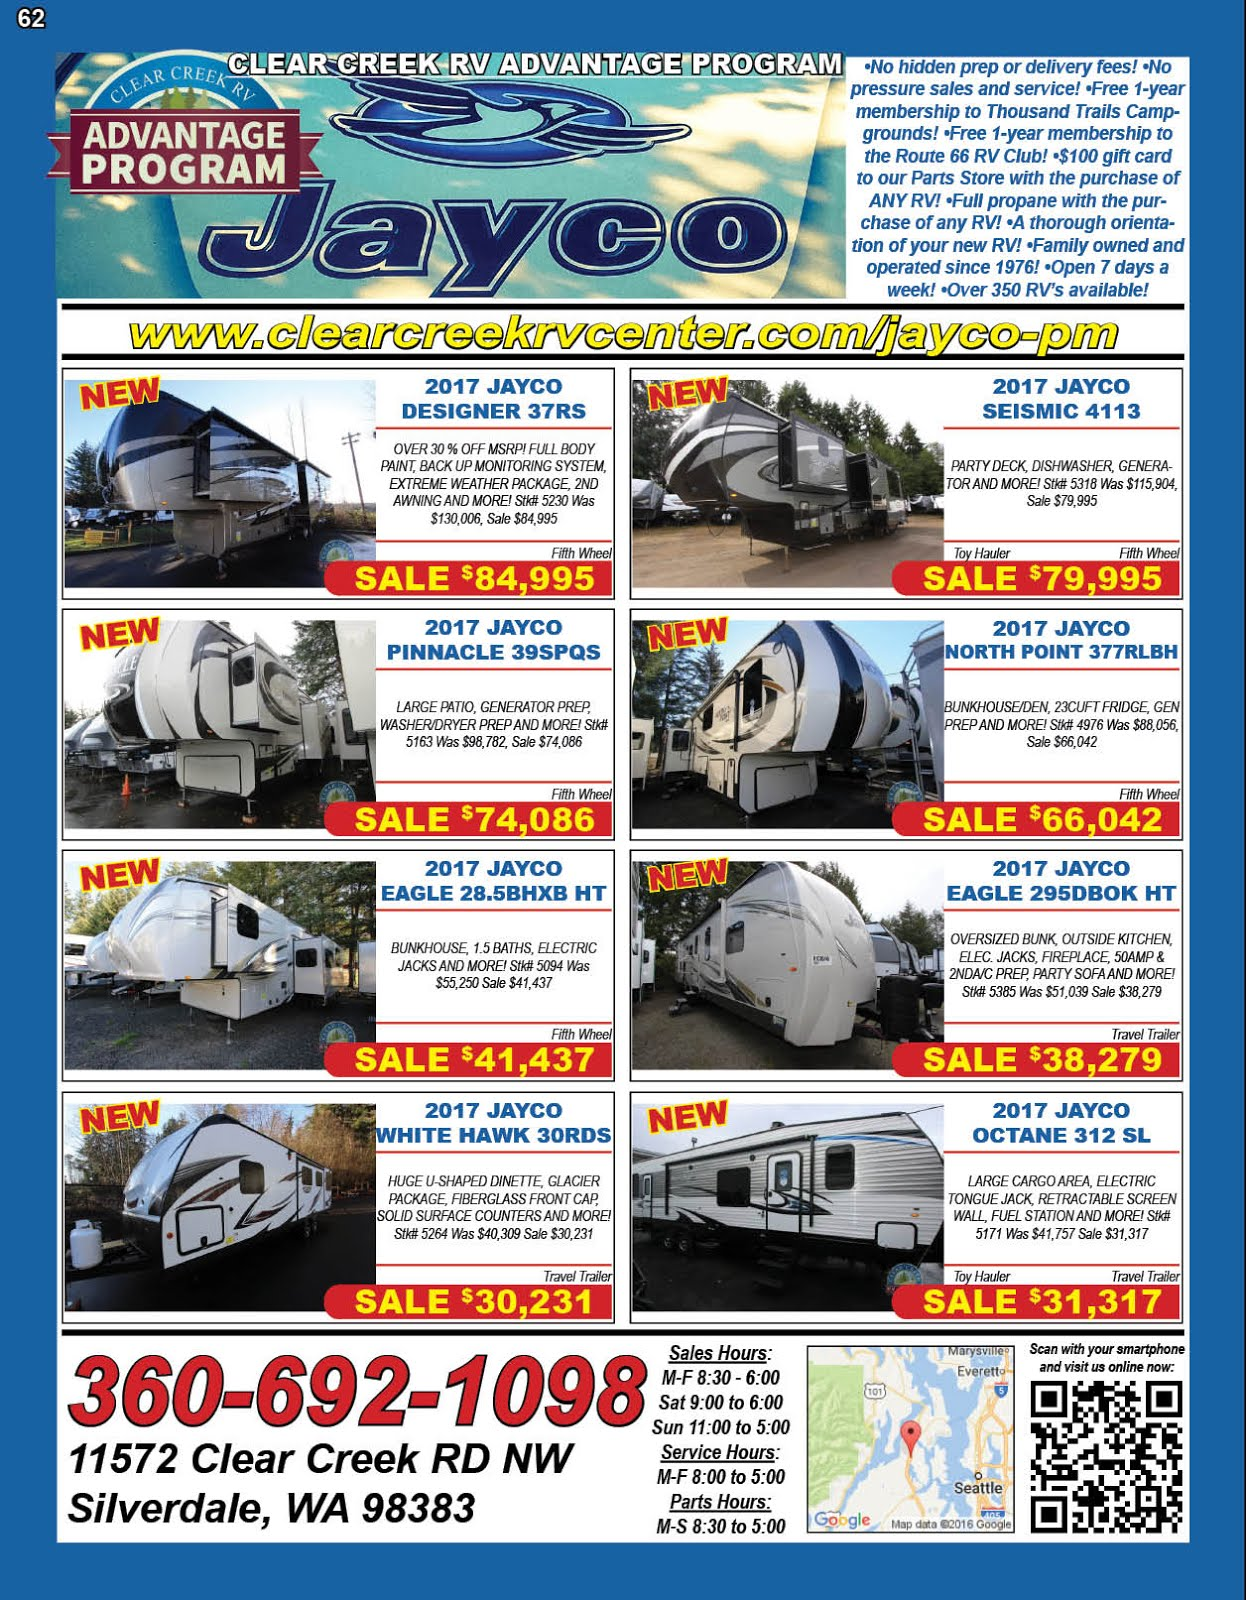 Clear Creek RV Center Clear Creek RV Advantage Program on Jayco Inventory!!